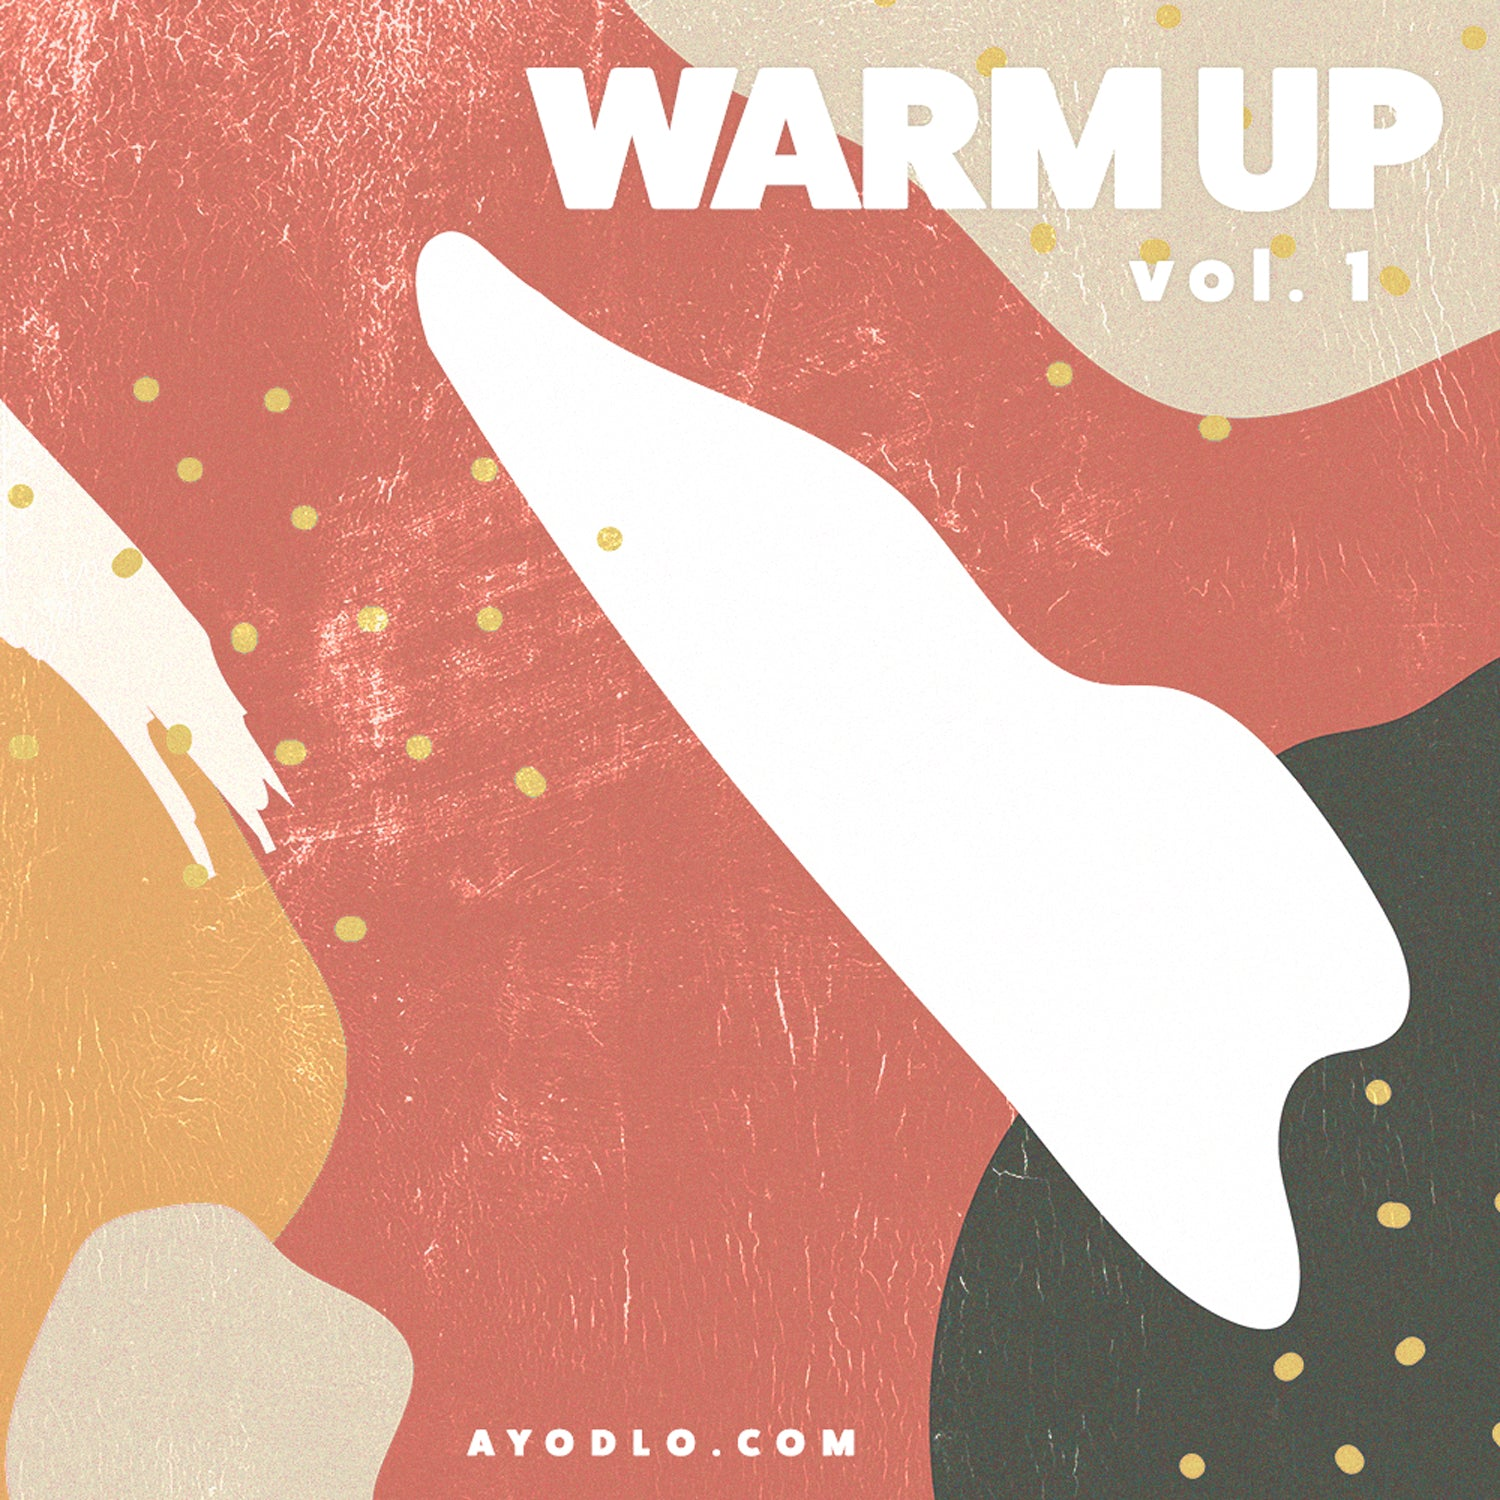 WARM UP Vol.1